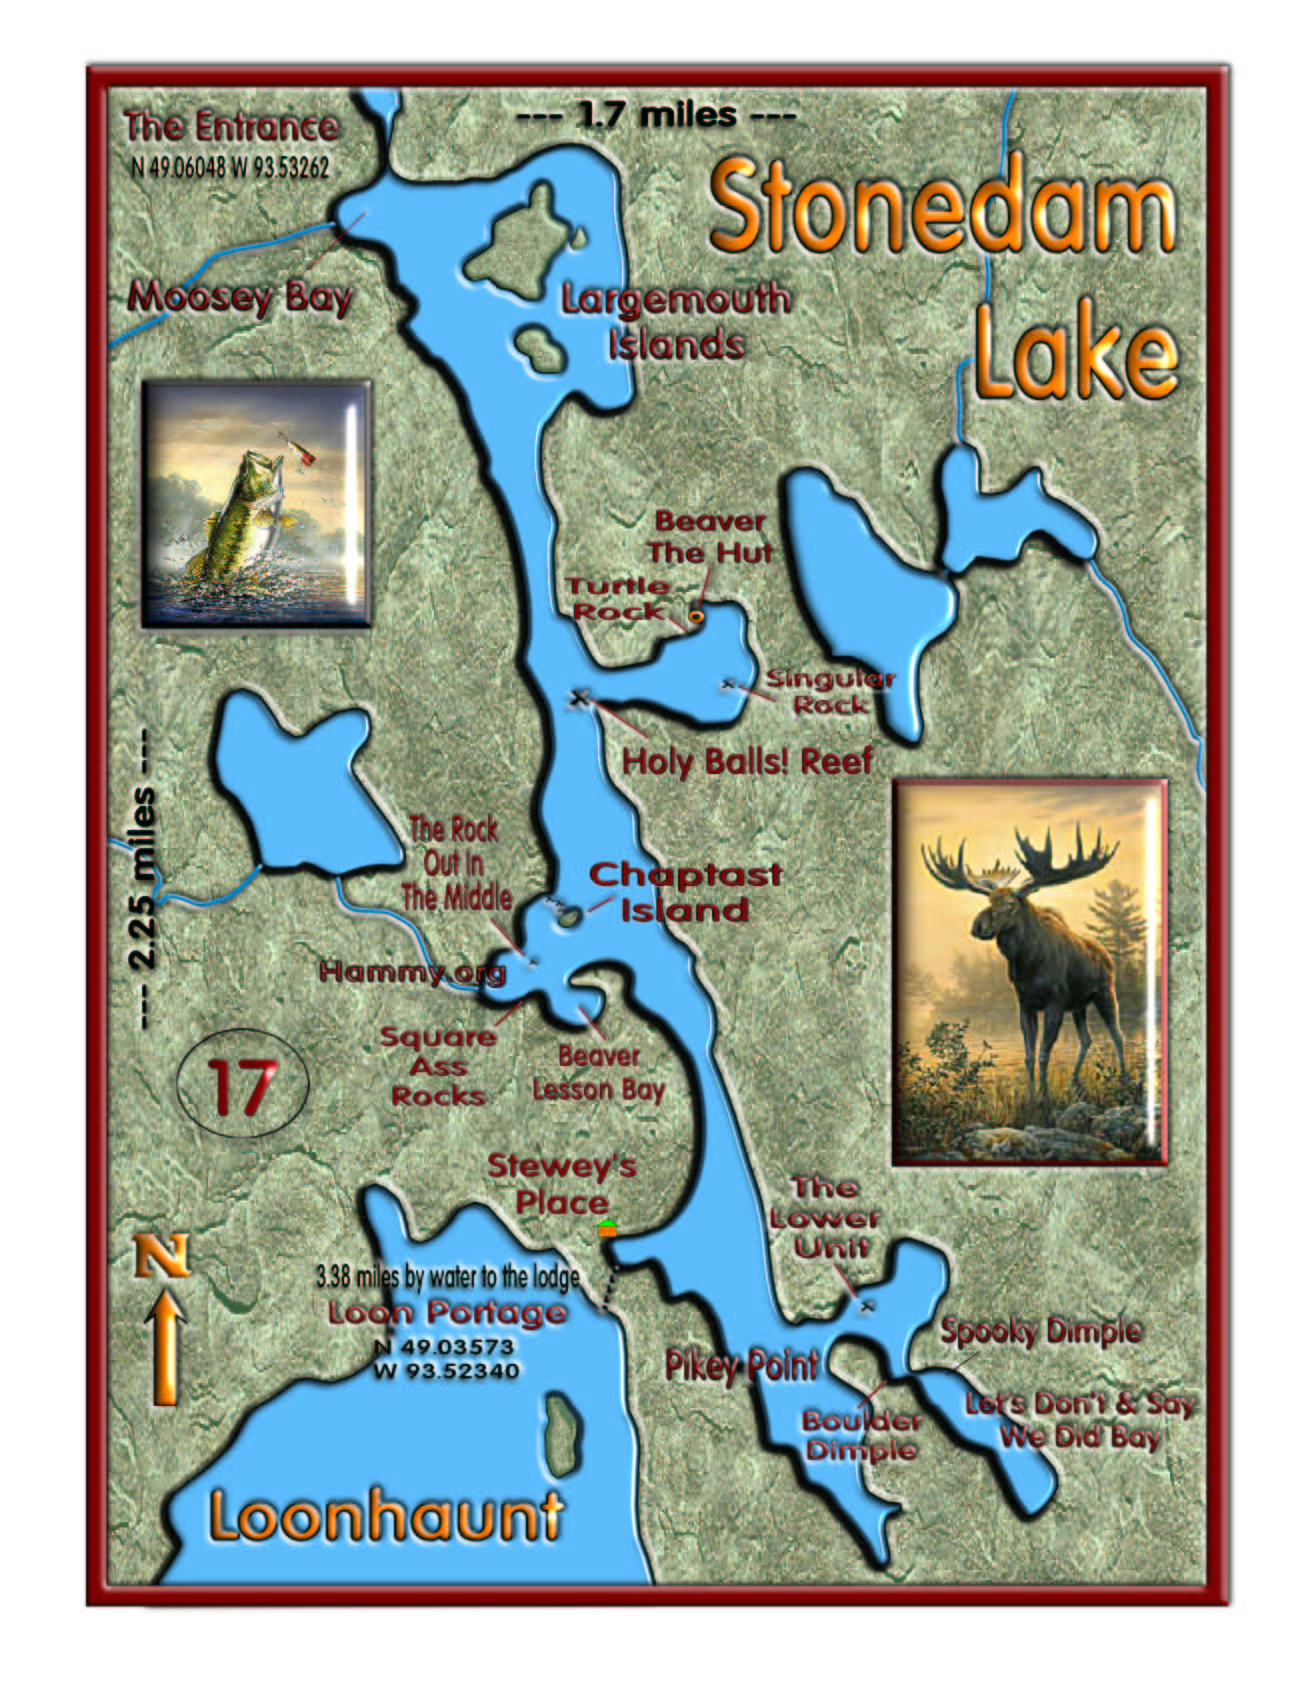 Stonedam Lake map